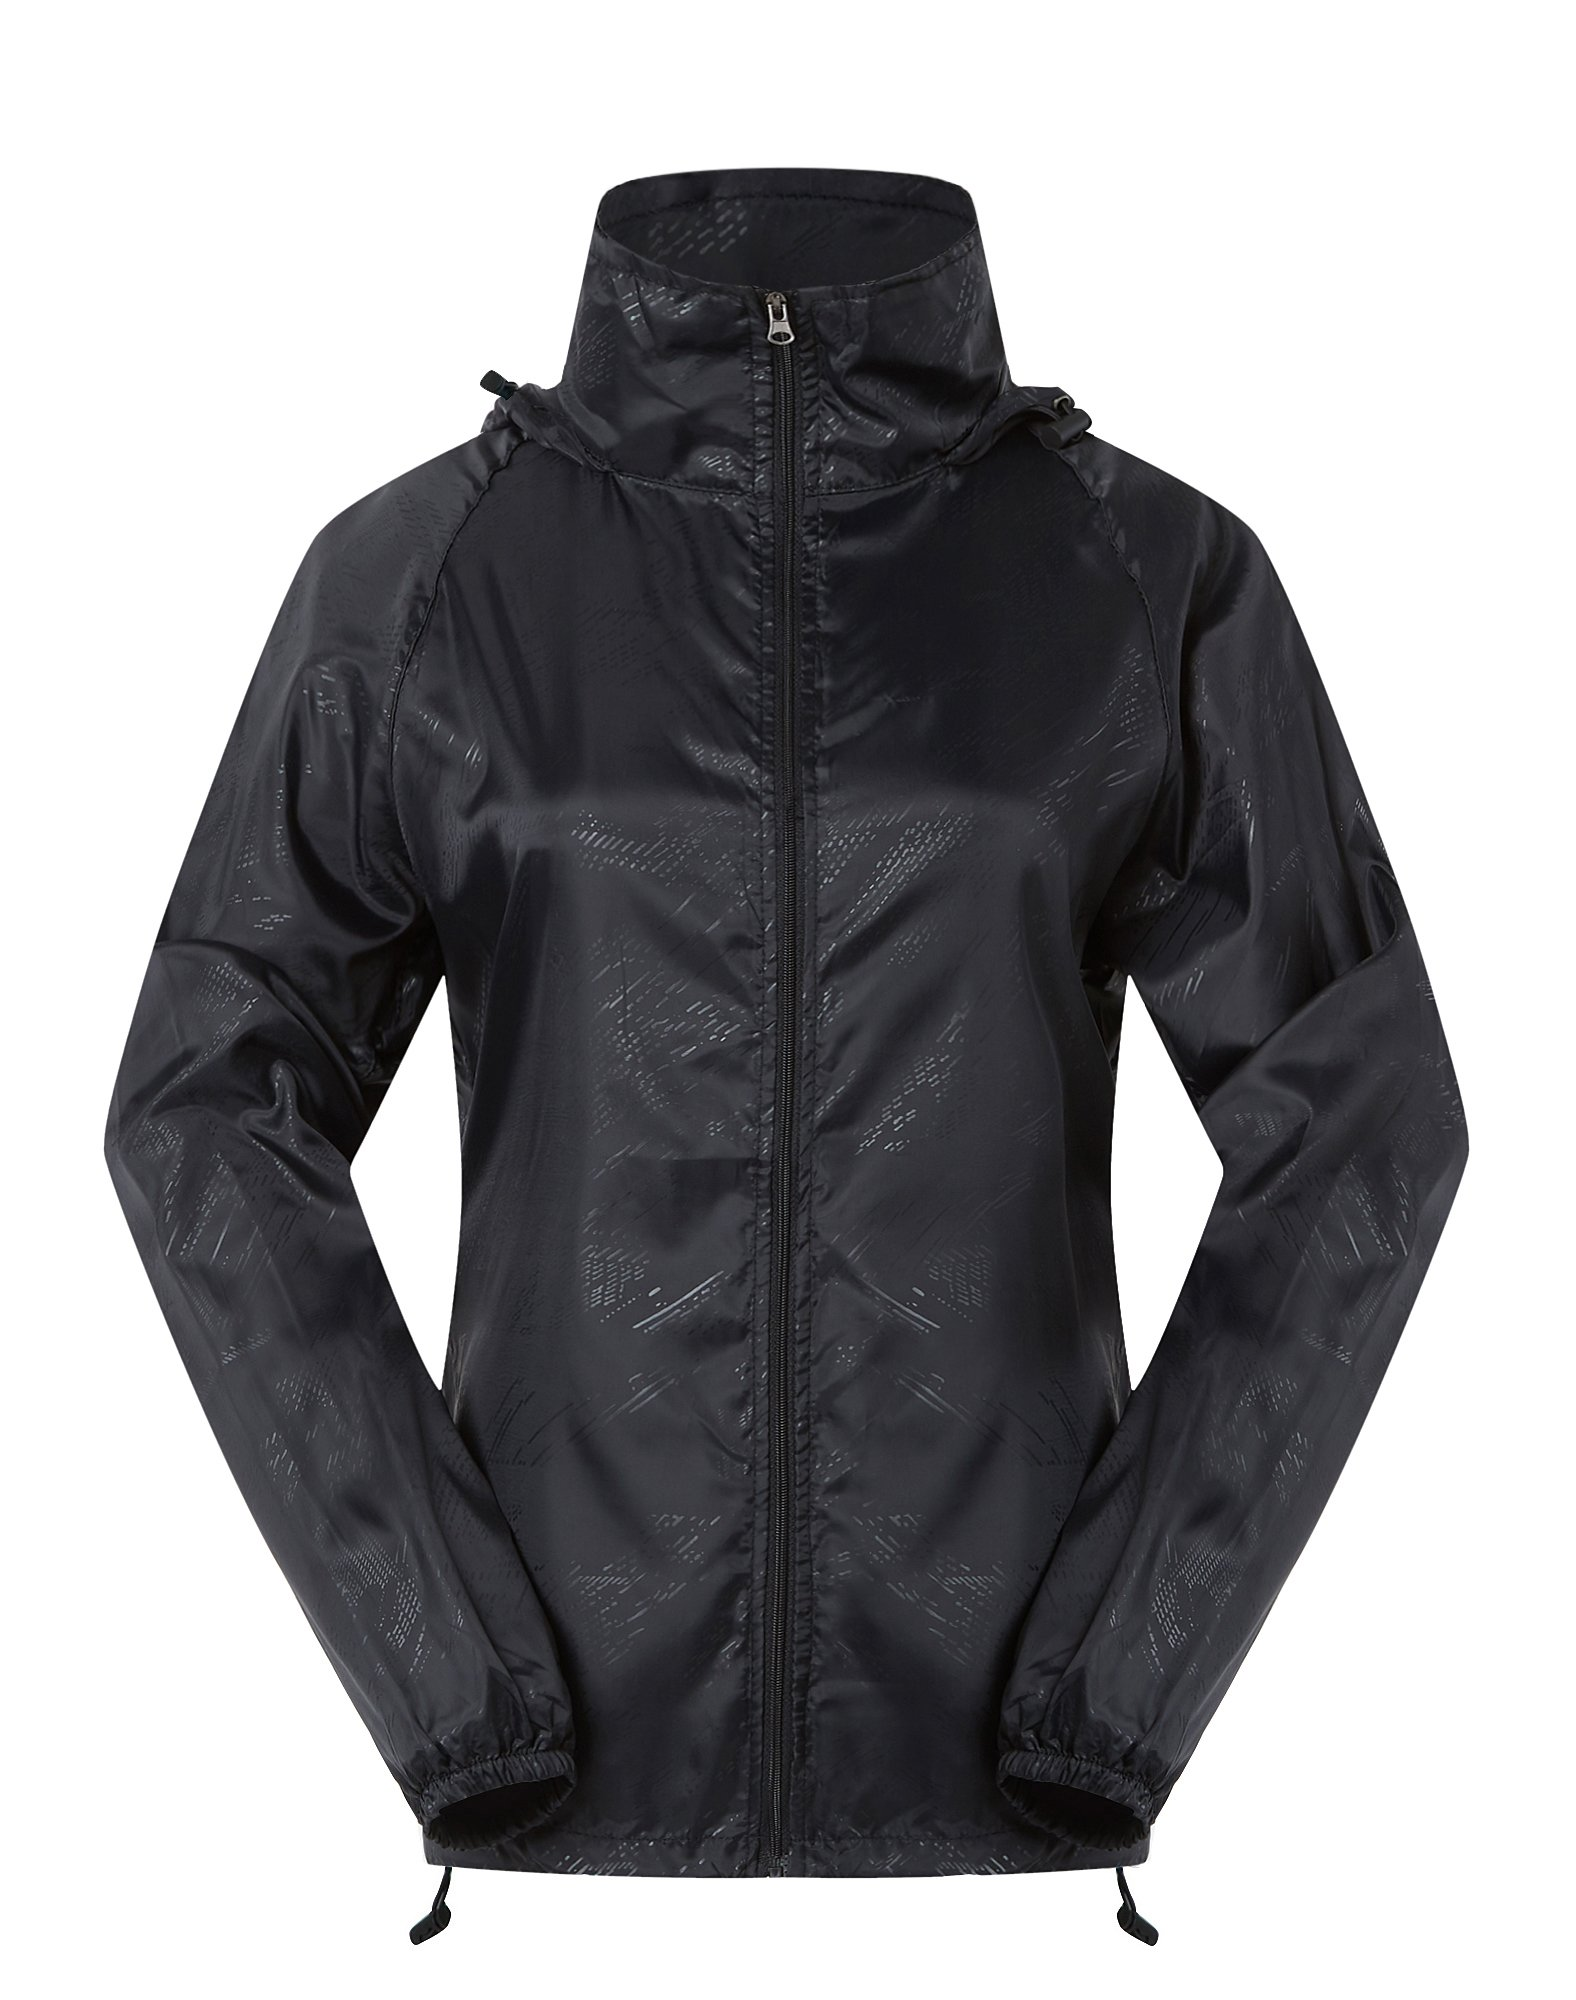 Cheering Women's Lightweight Jackets Women Waterproof Windbreaker Jacket Super Quick Dry UV Protect Running Coat Black L